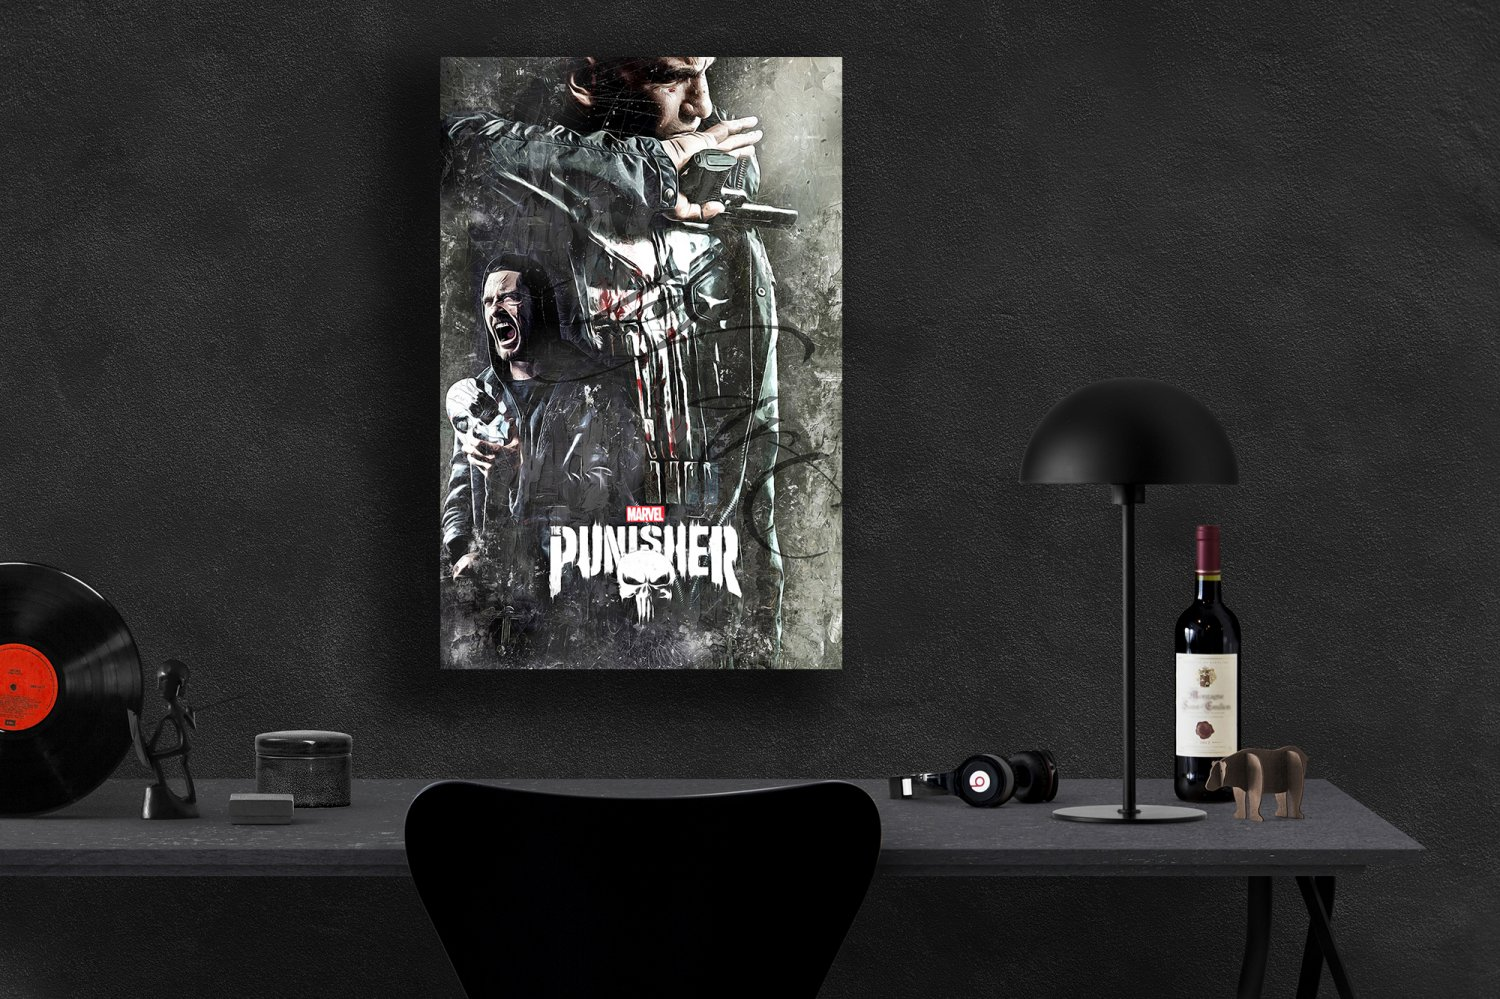 The Punisher, Frank Castle, Billy Russo, Jon Bernthal, Ben Barnes  13x19 inches Canvas Print